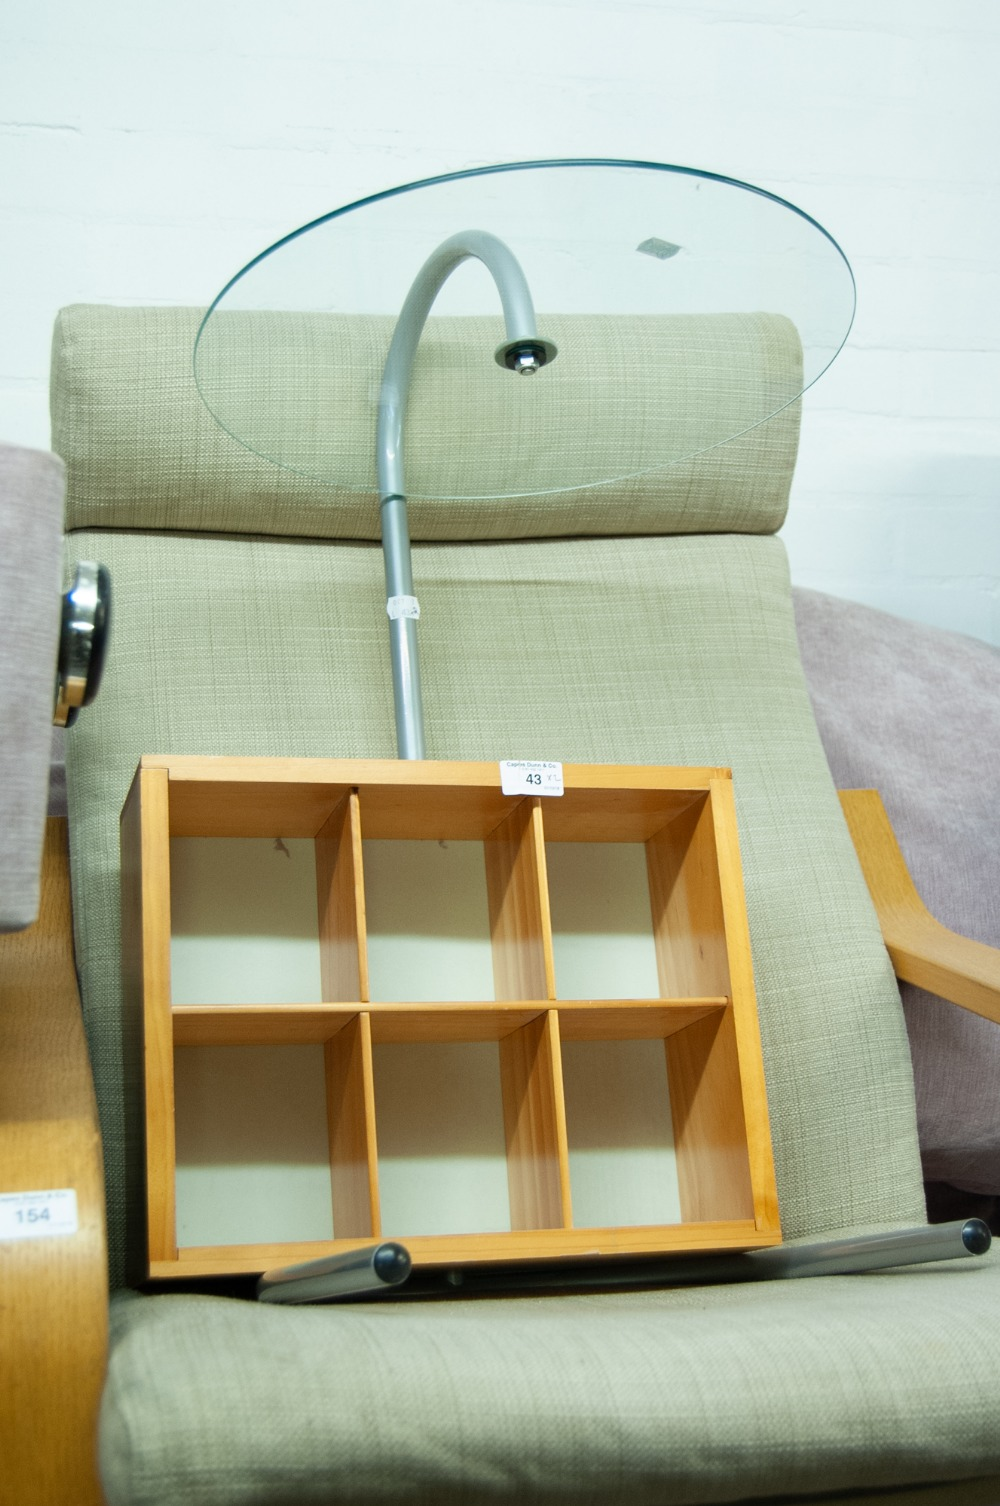 Lot 43 - A SET OF MODERN PINE SIX CHUBBY STORAGE SHELVES, A MODERN RETRO-STYLE COFFEE TABLE of circular glass